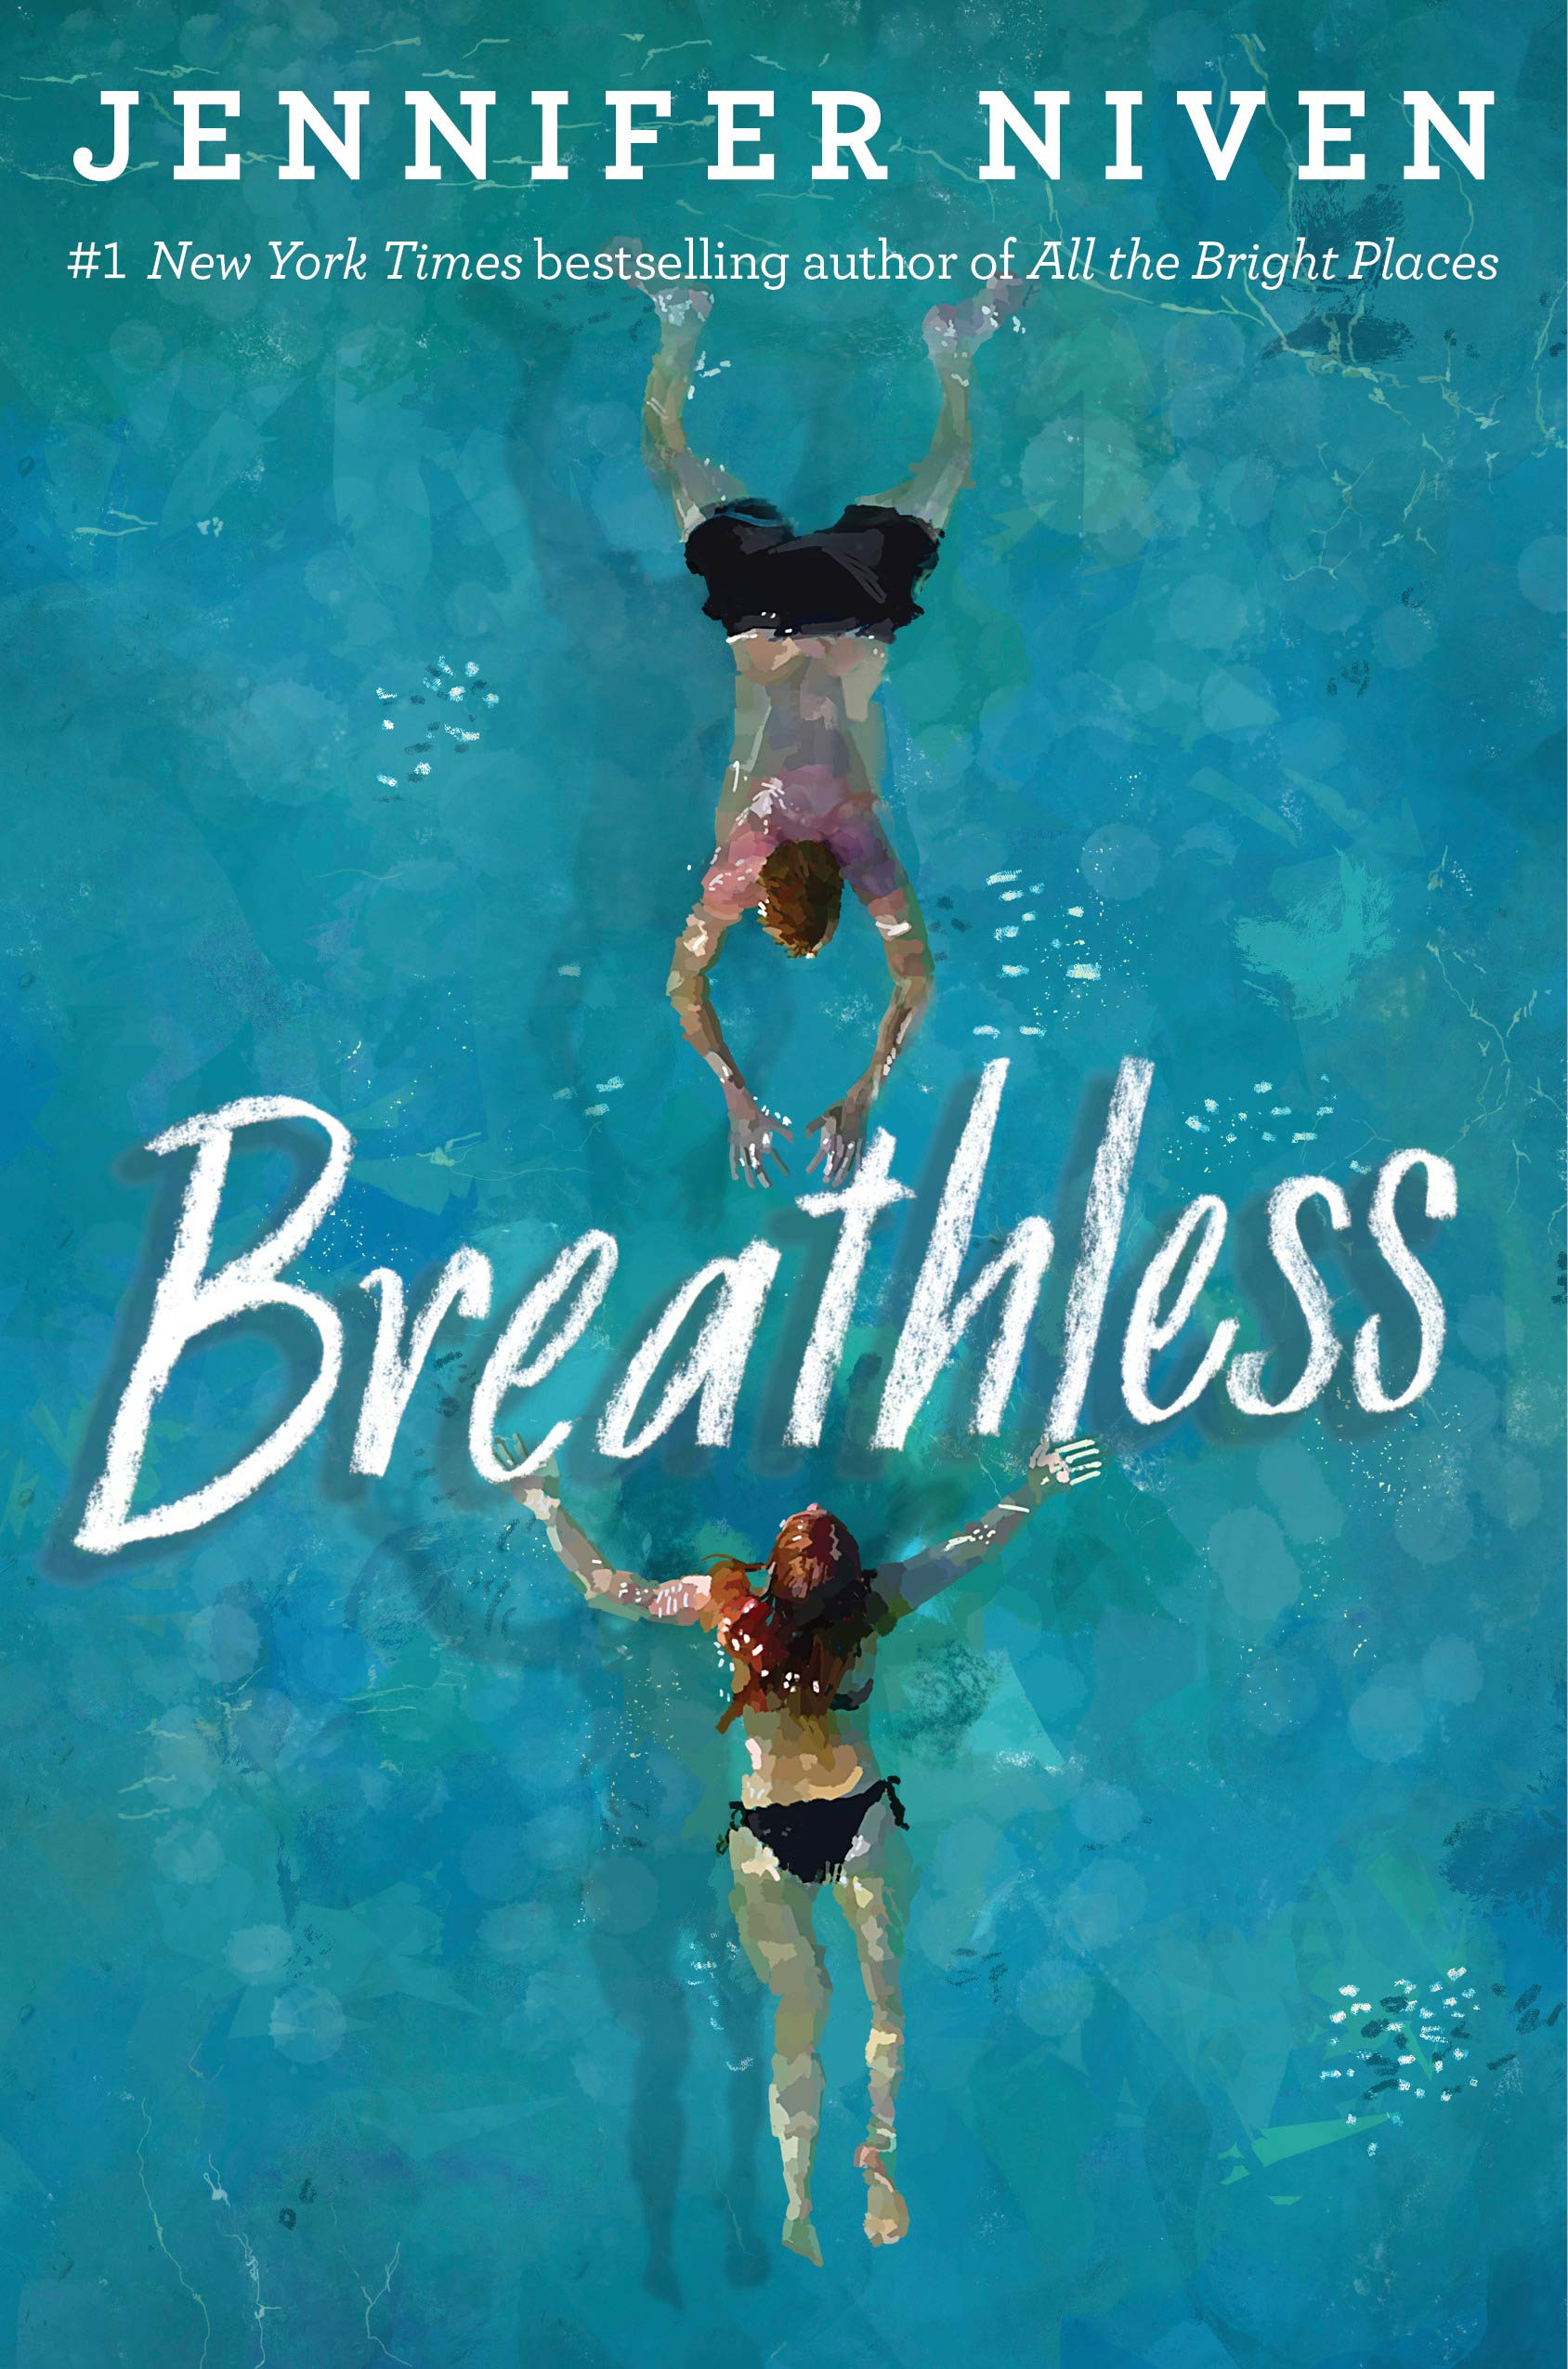 When Will Breathless By Jennifer Niven Release? 2020 YA Contemporary Romance Releases